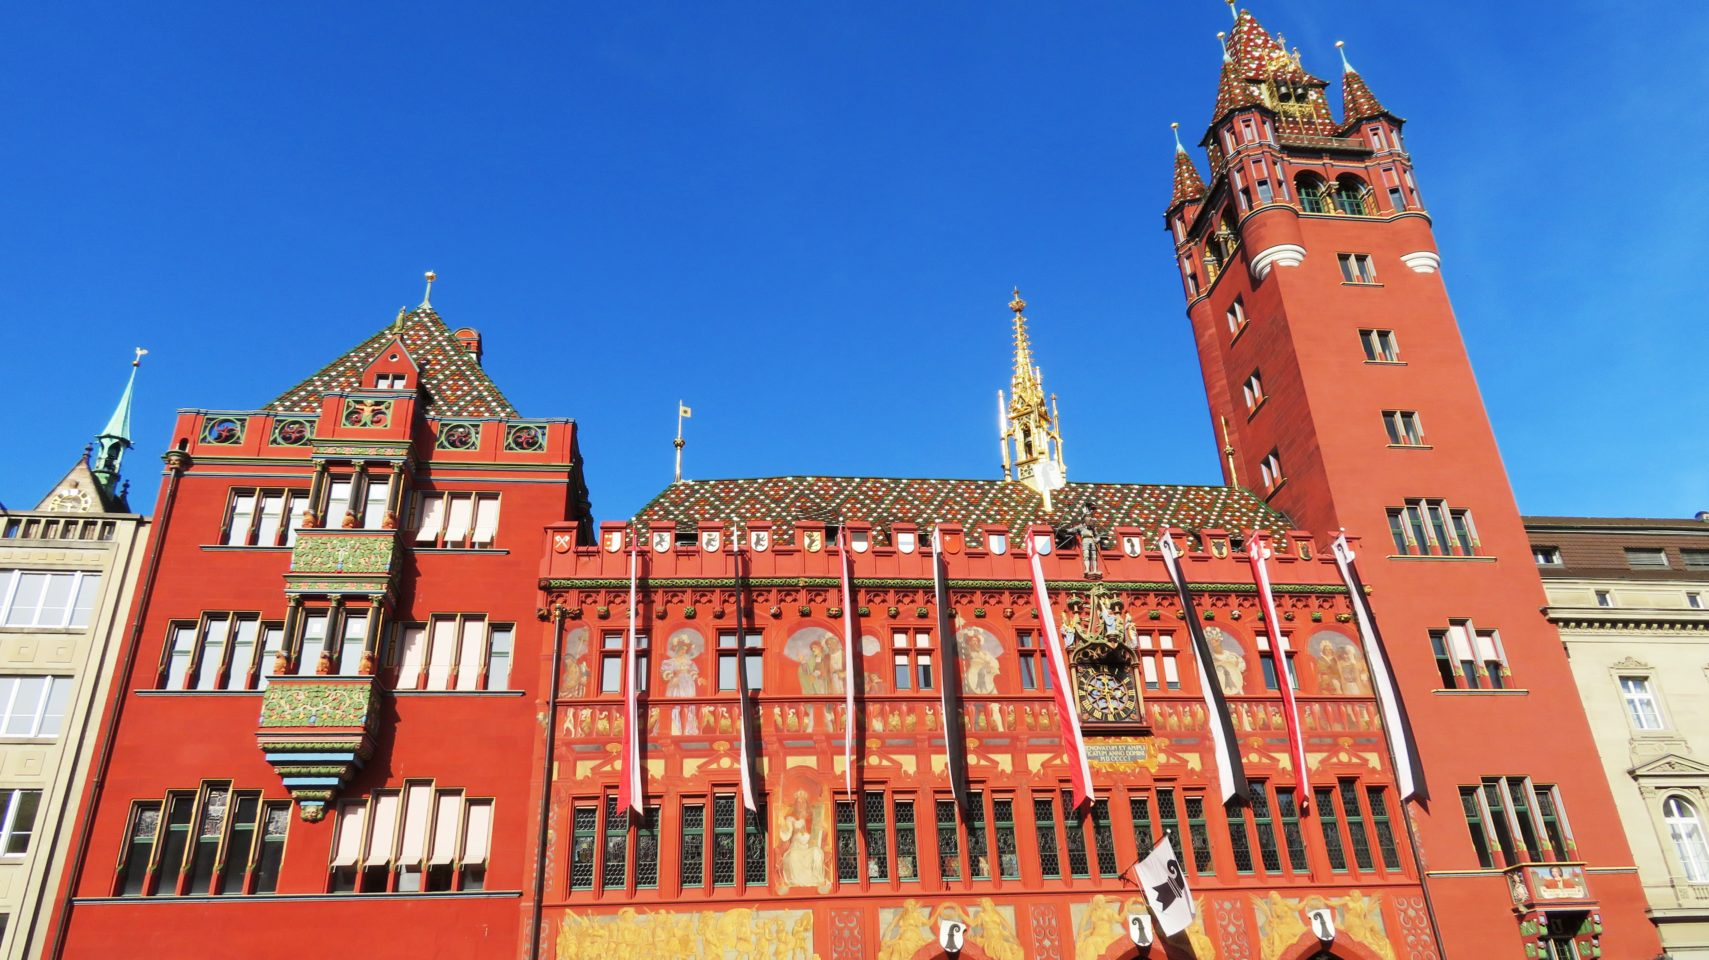 Red Town Hall (RatHaus) on Marketplatz in <em><strong>Basel</strong></em>, Switzerland